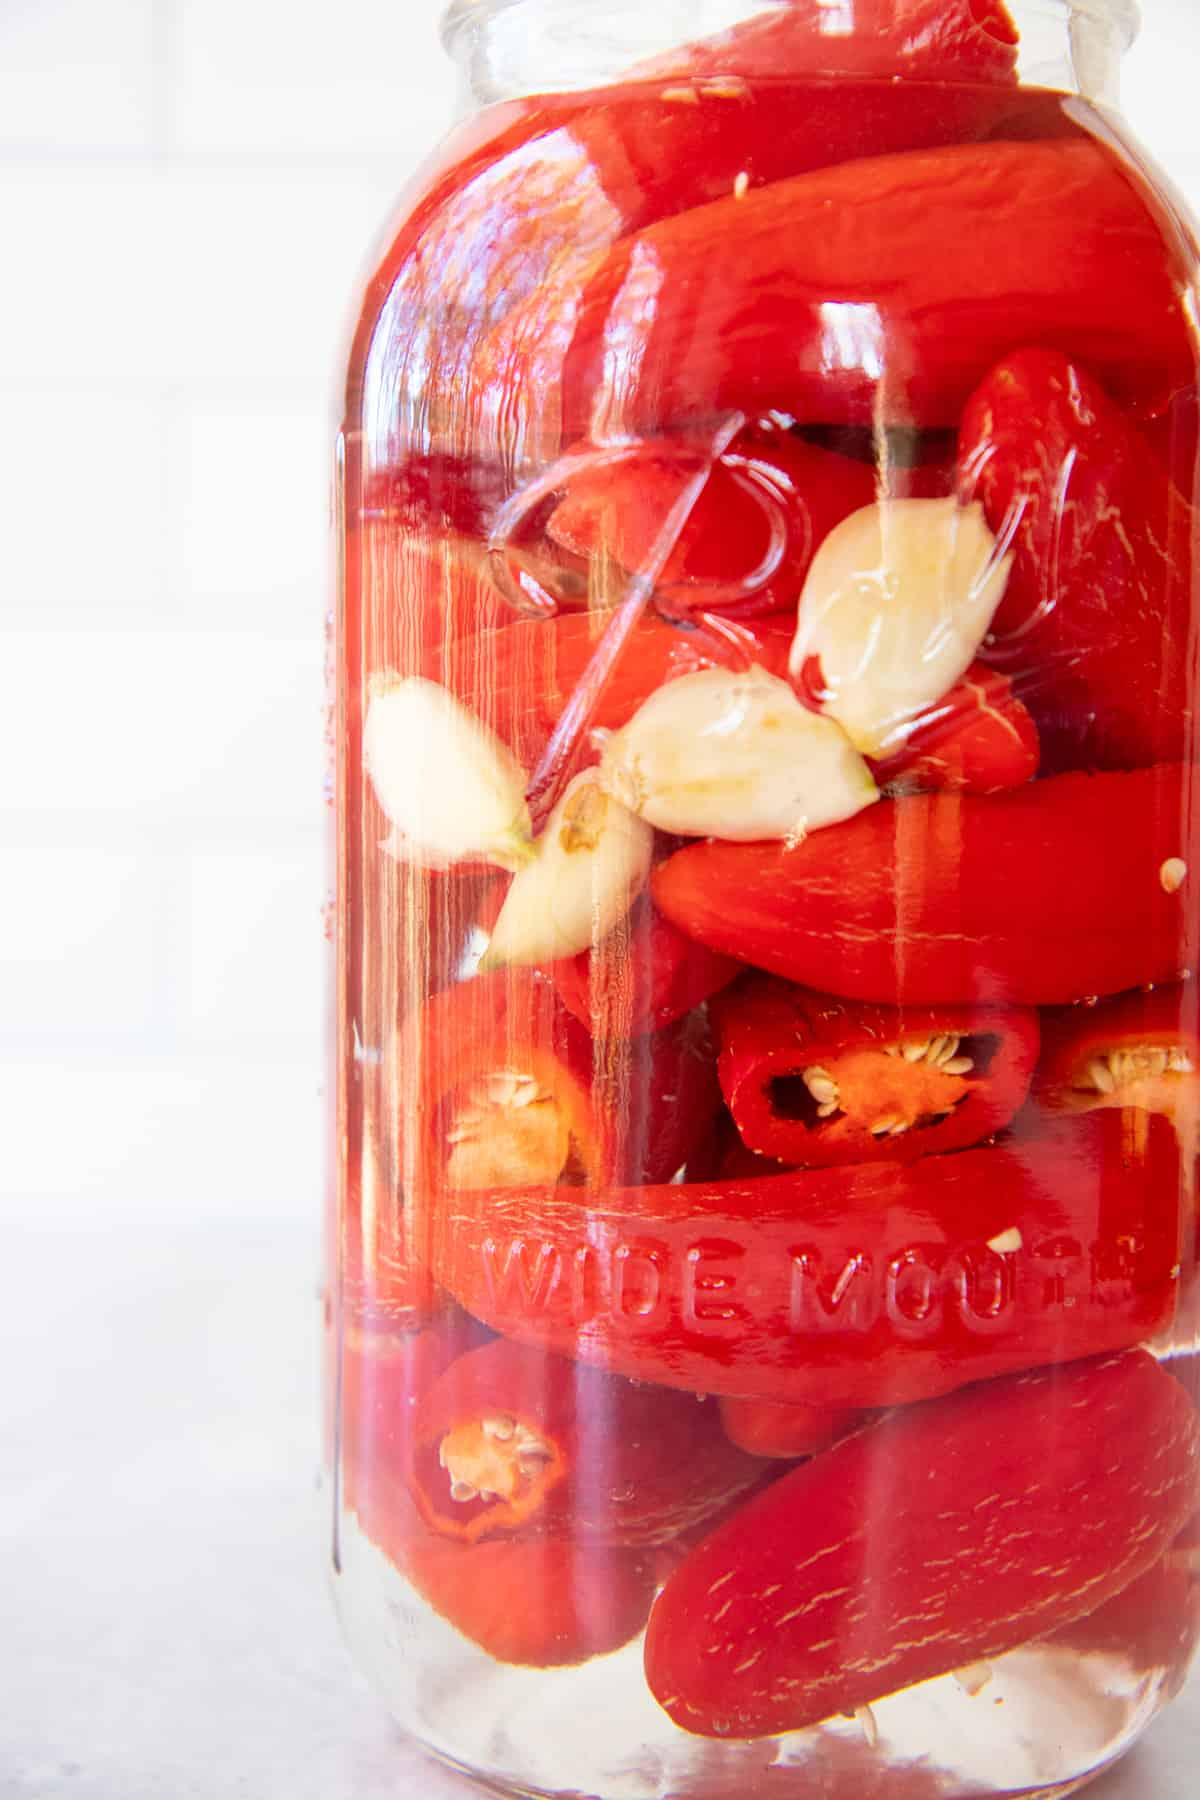 Close up of red peppers and garlic fermenting in a glass jar.